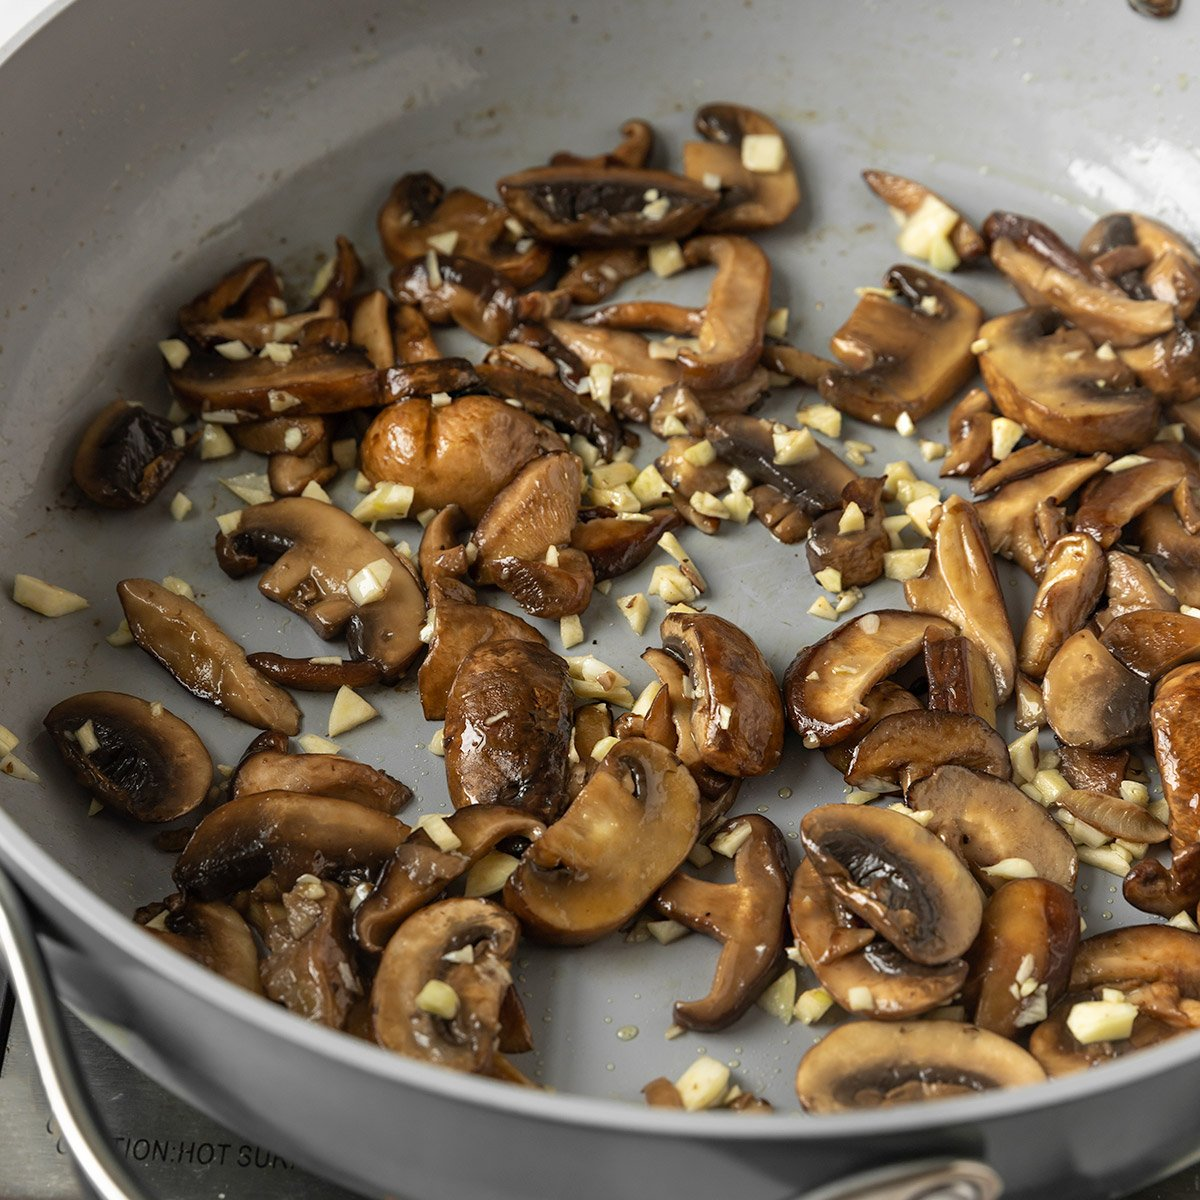 mushrooms and garlic being cooked in a saute pan